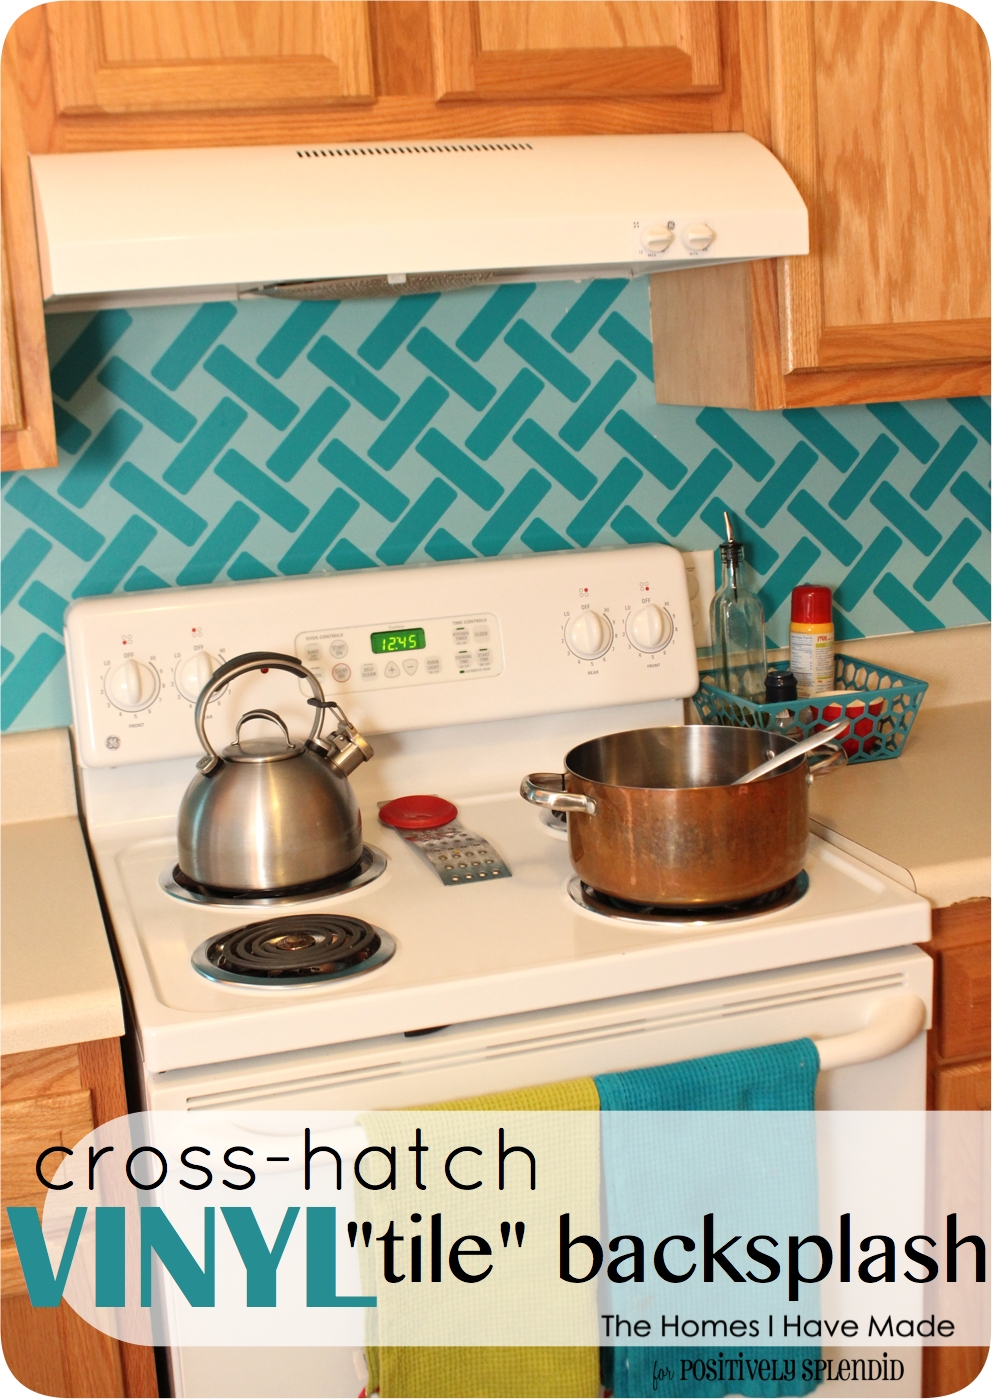 High Quality Cross Hatch Vinyl U201cTileu201d Backsplash!